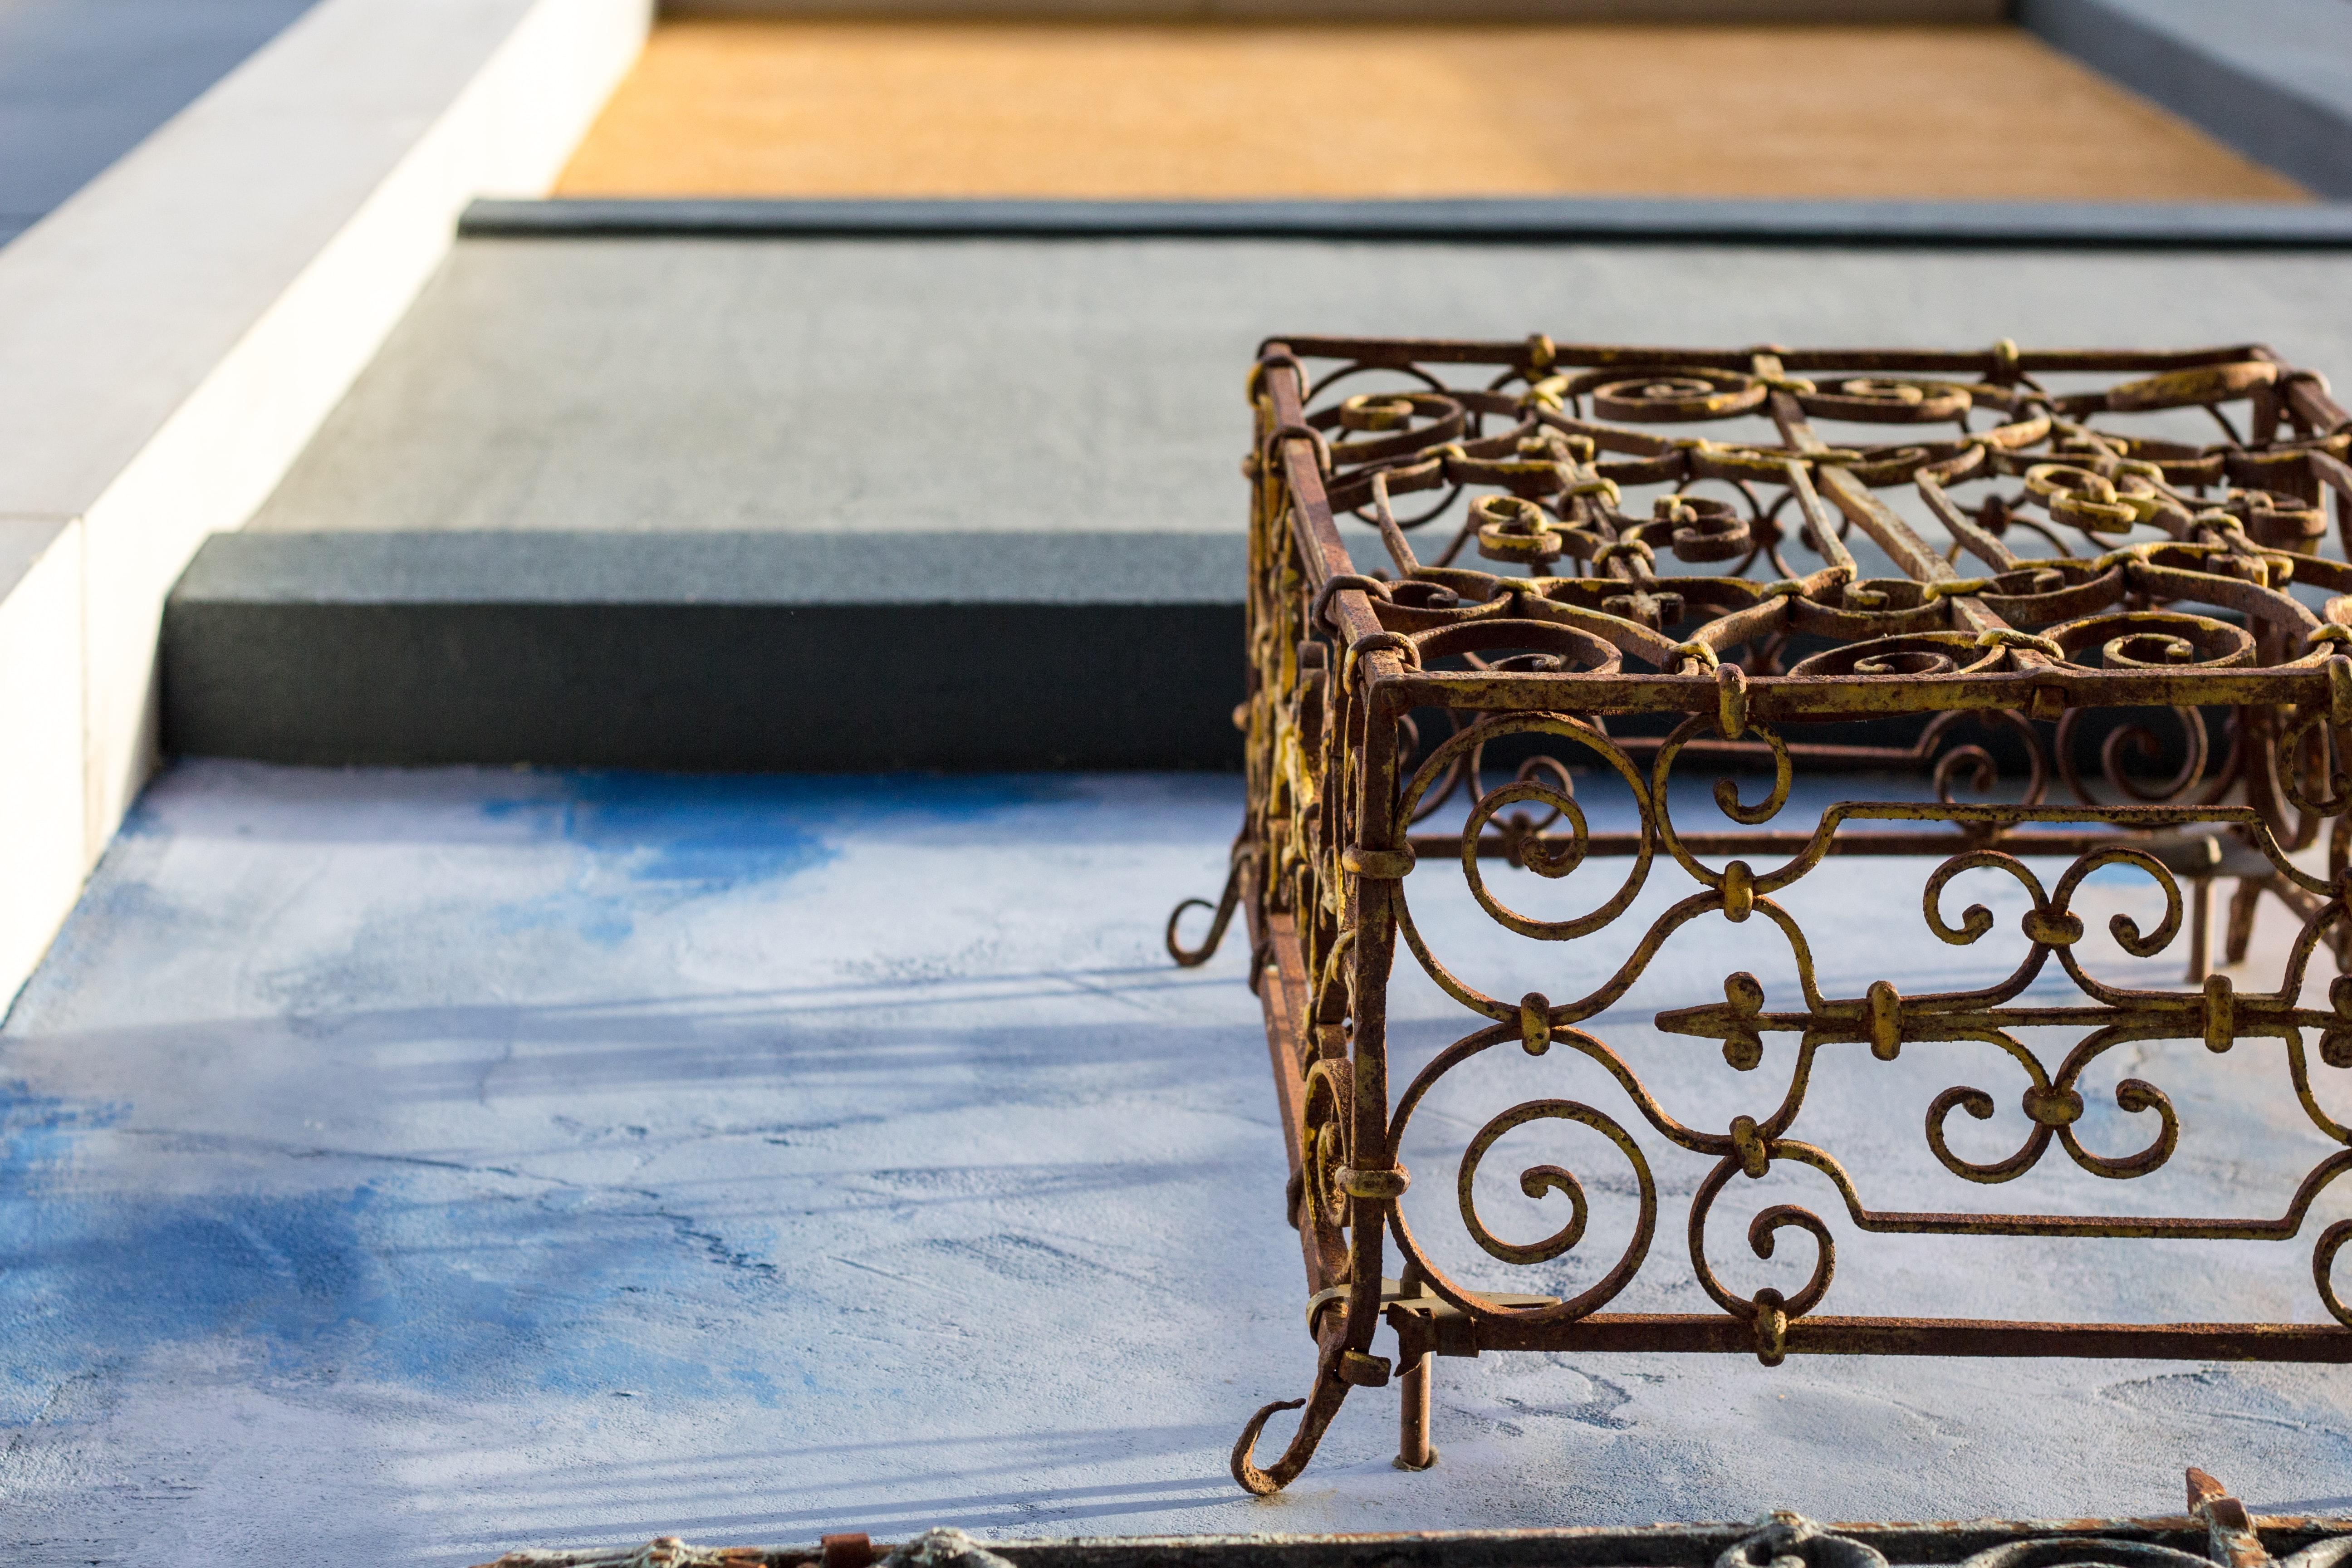 brown metal crate on blue surface